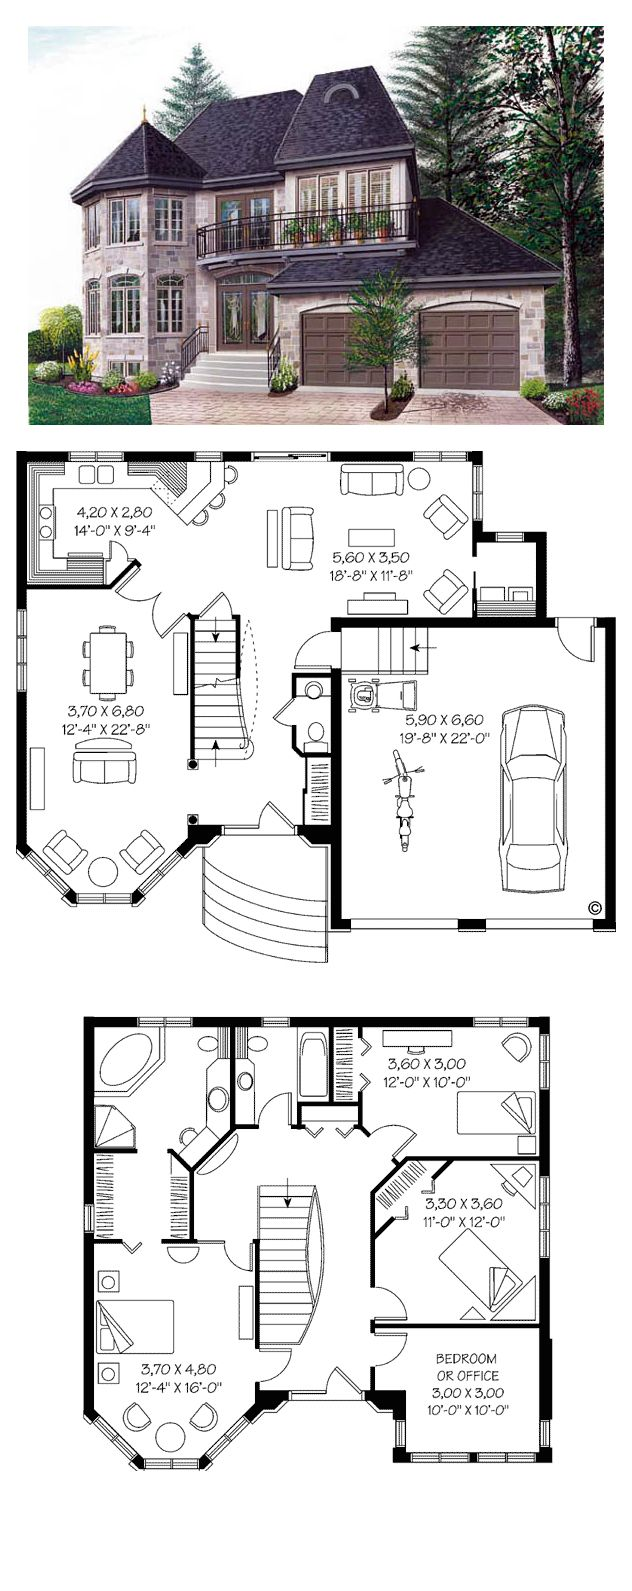 sims 3 family house blueprints. European Victorian House Plan 65210  Sims 4 Houses LayoutSims 3 20 best sims id es images on Pinterest blueprints